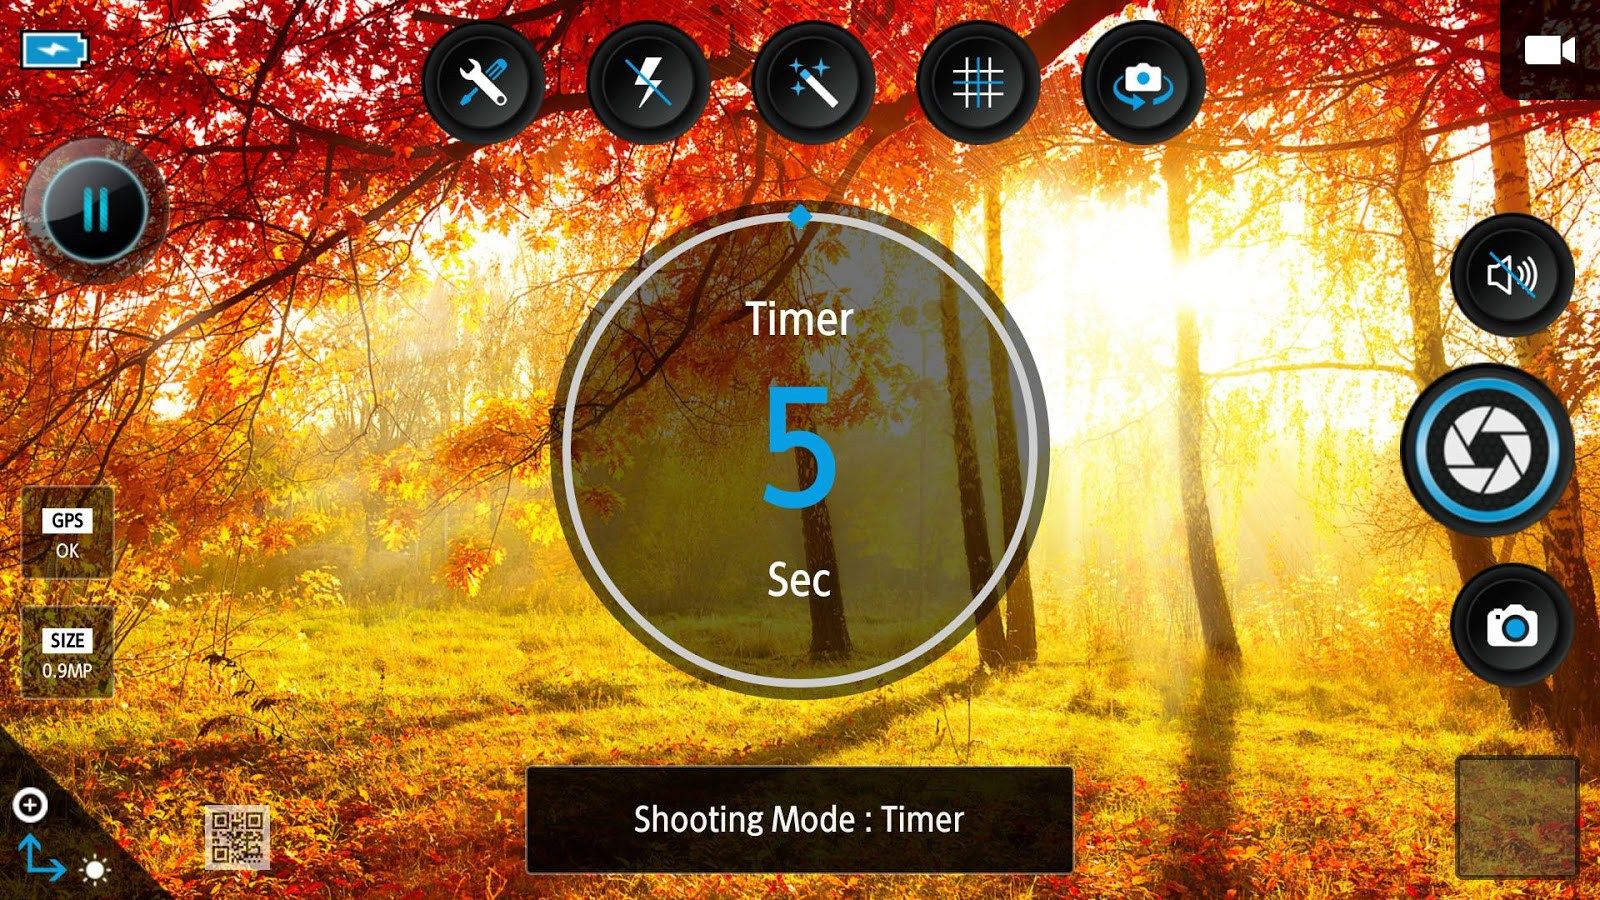 HD Camera Pro v2.2.0 Paid APK